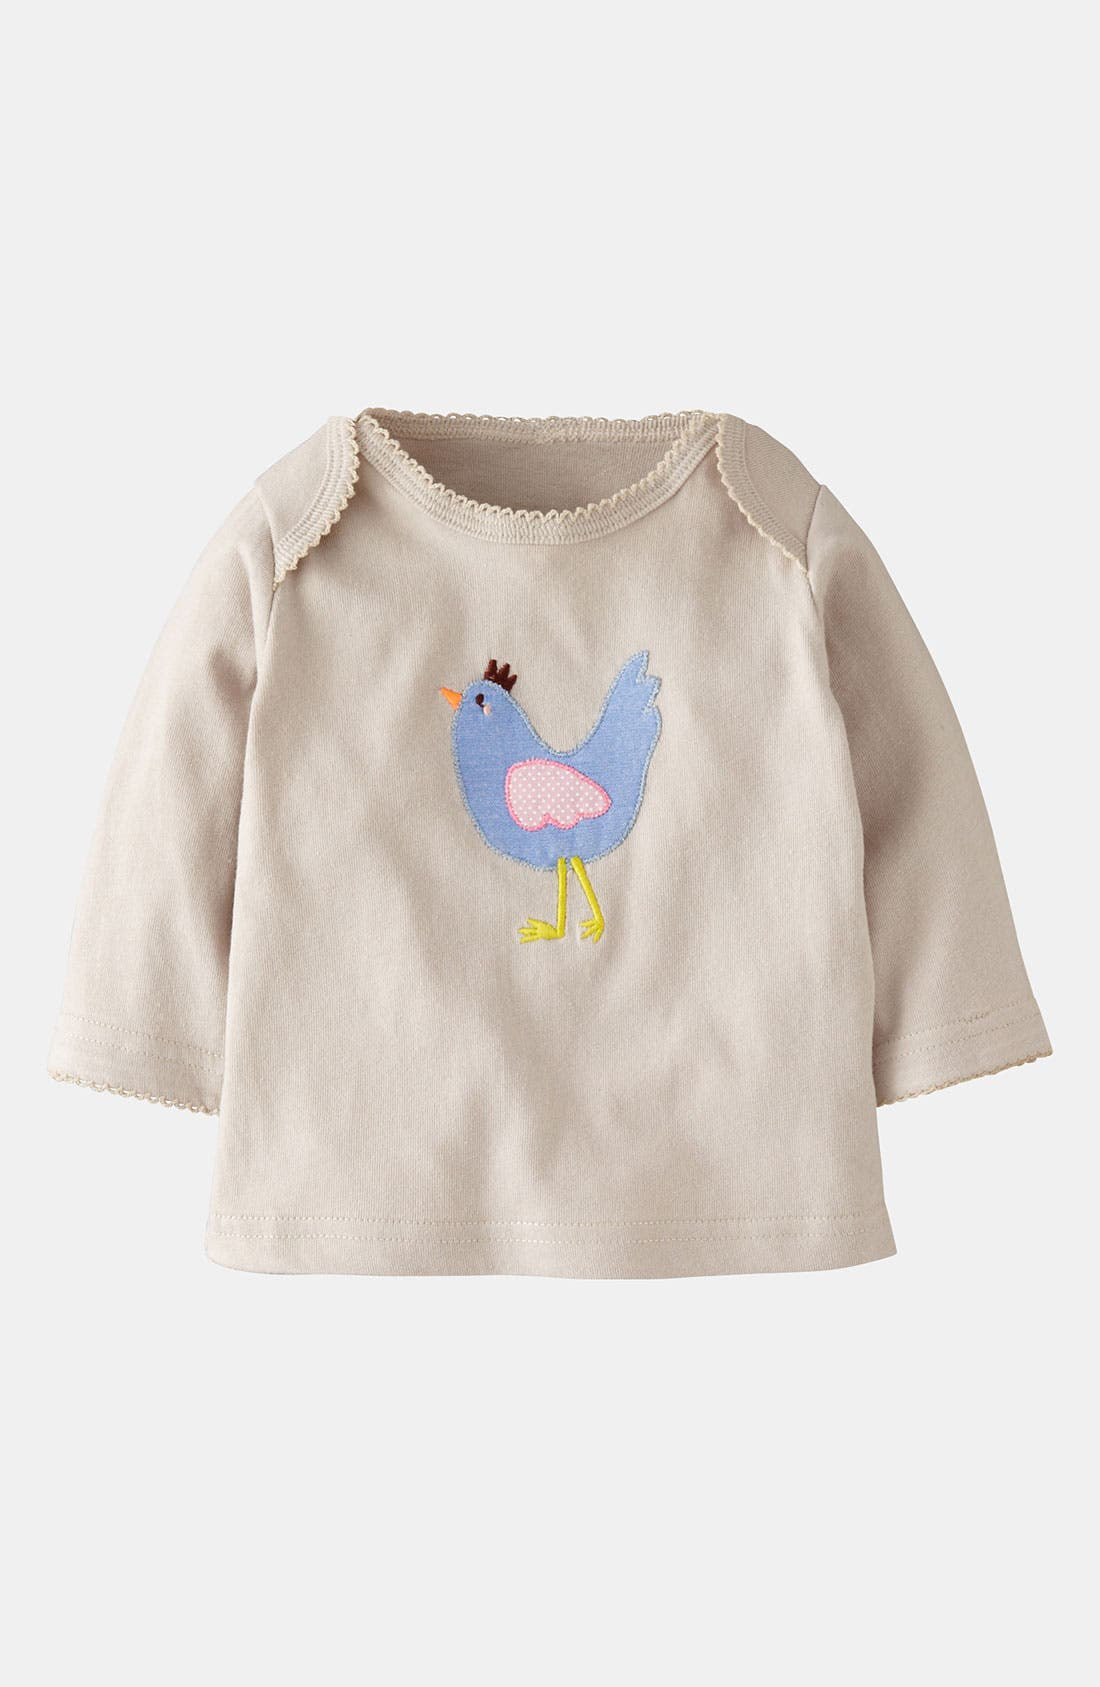 Main Image - Mini Boden 'Pretty Appliqué' Tee (Baby)